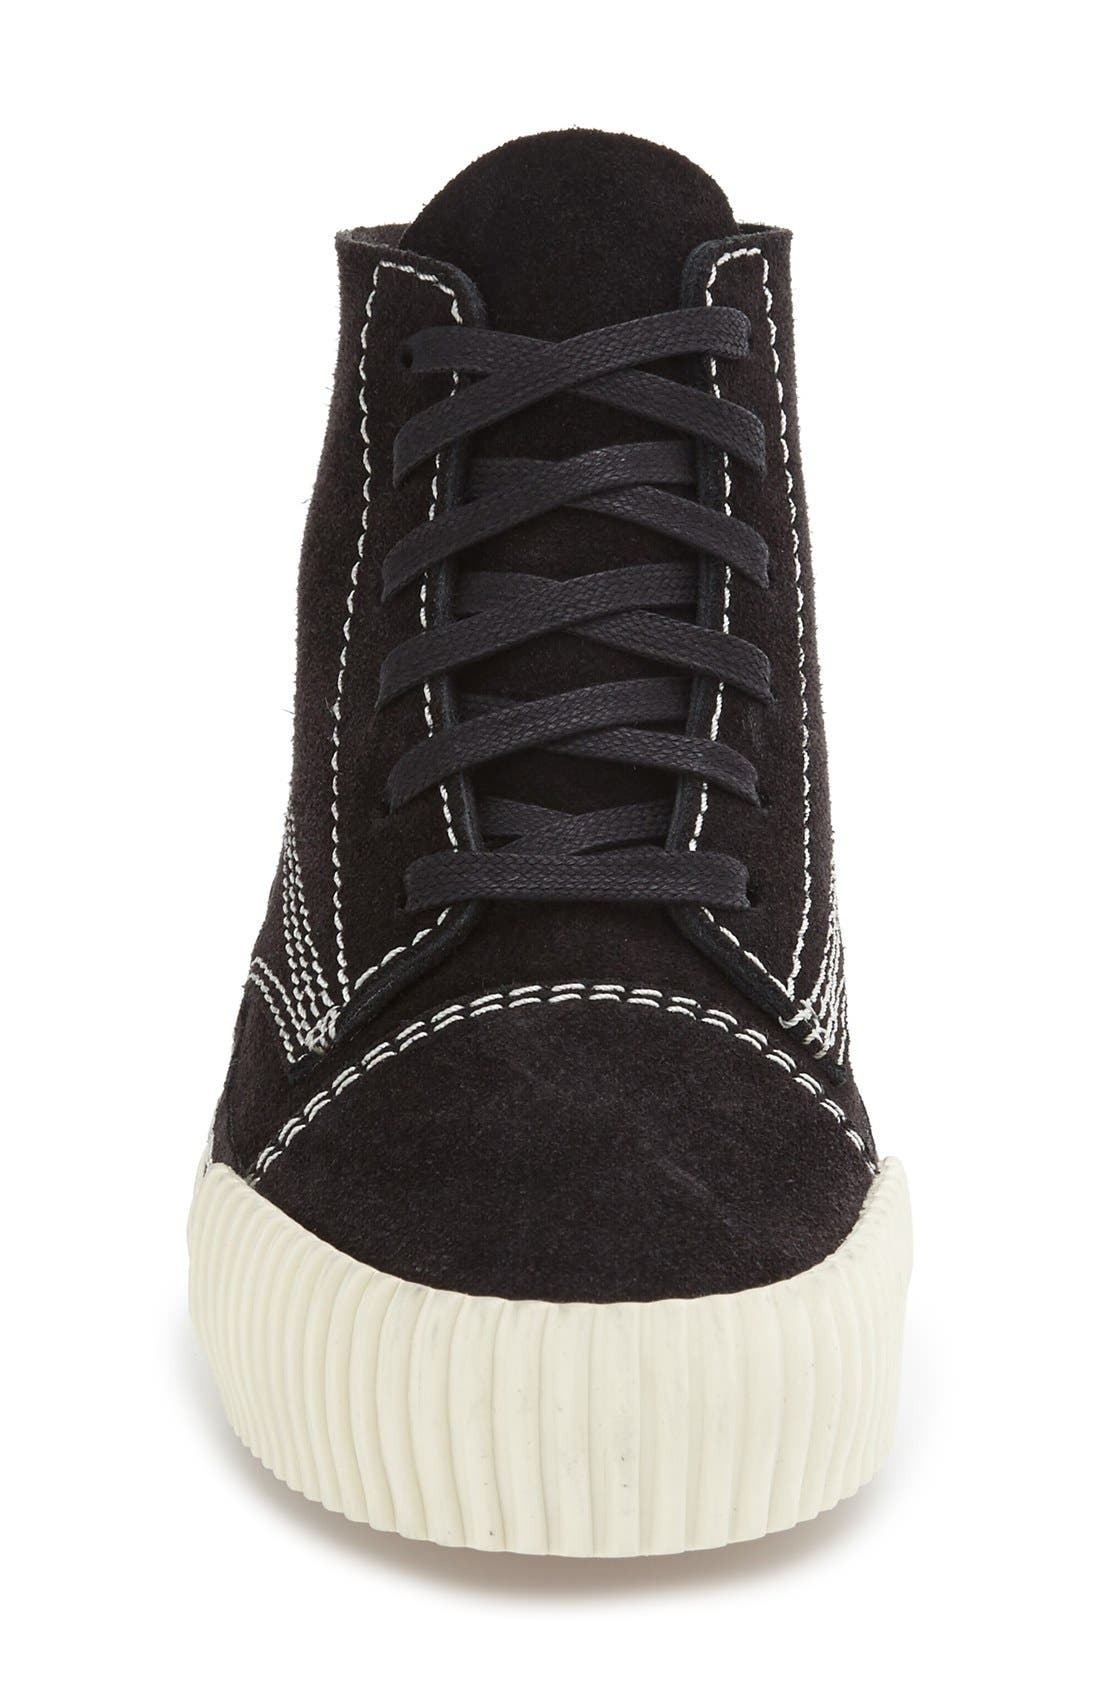 'Perry' Suede High Top Sneaker,                             Alternate thumbnail 10, color,                             001